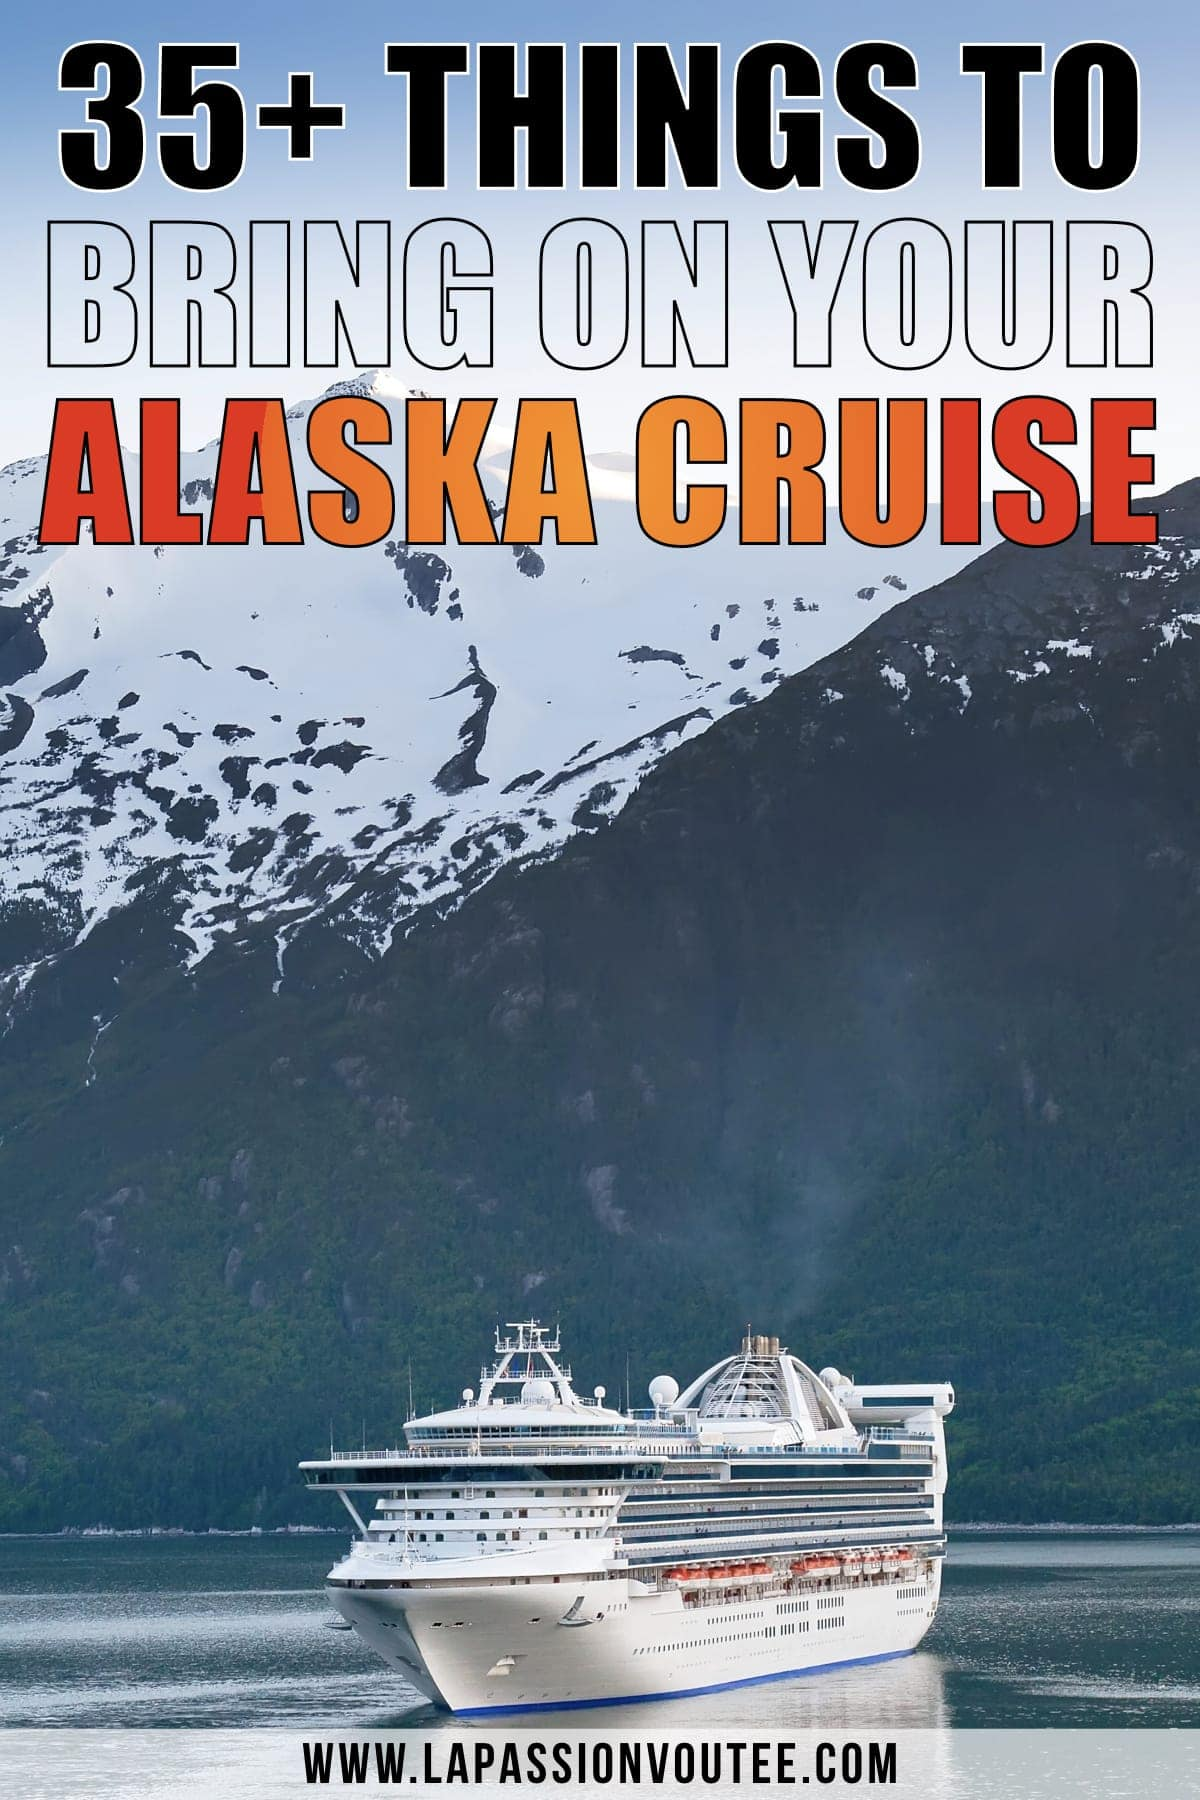 Wondering about what to pack for your Alaska cruise? I live in Alaska and I've covered everything you need for your vacation and things to take on a cruise to Alaska.